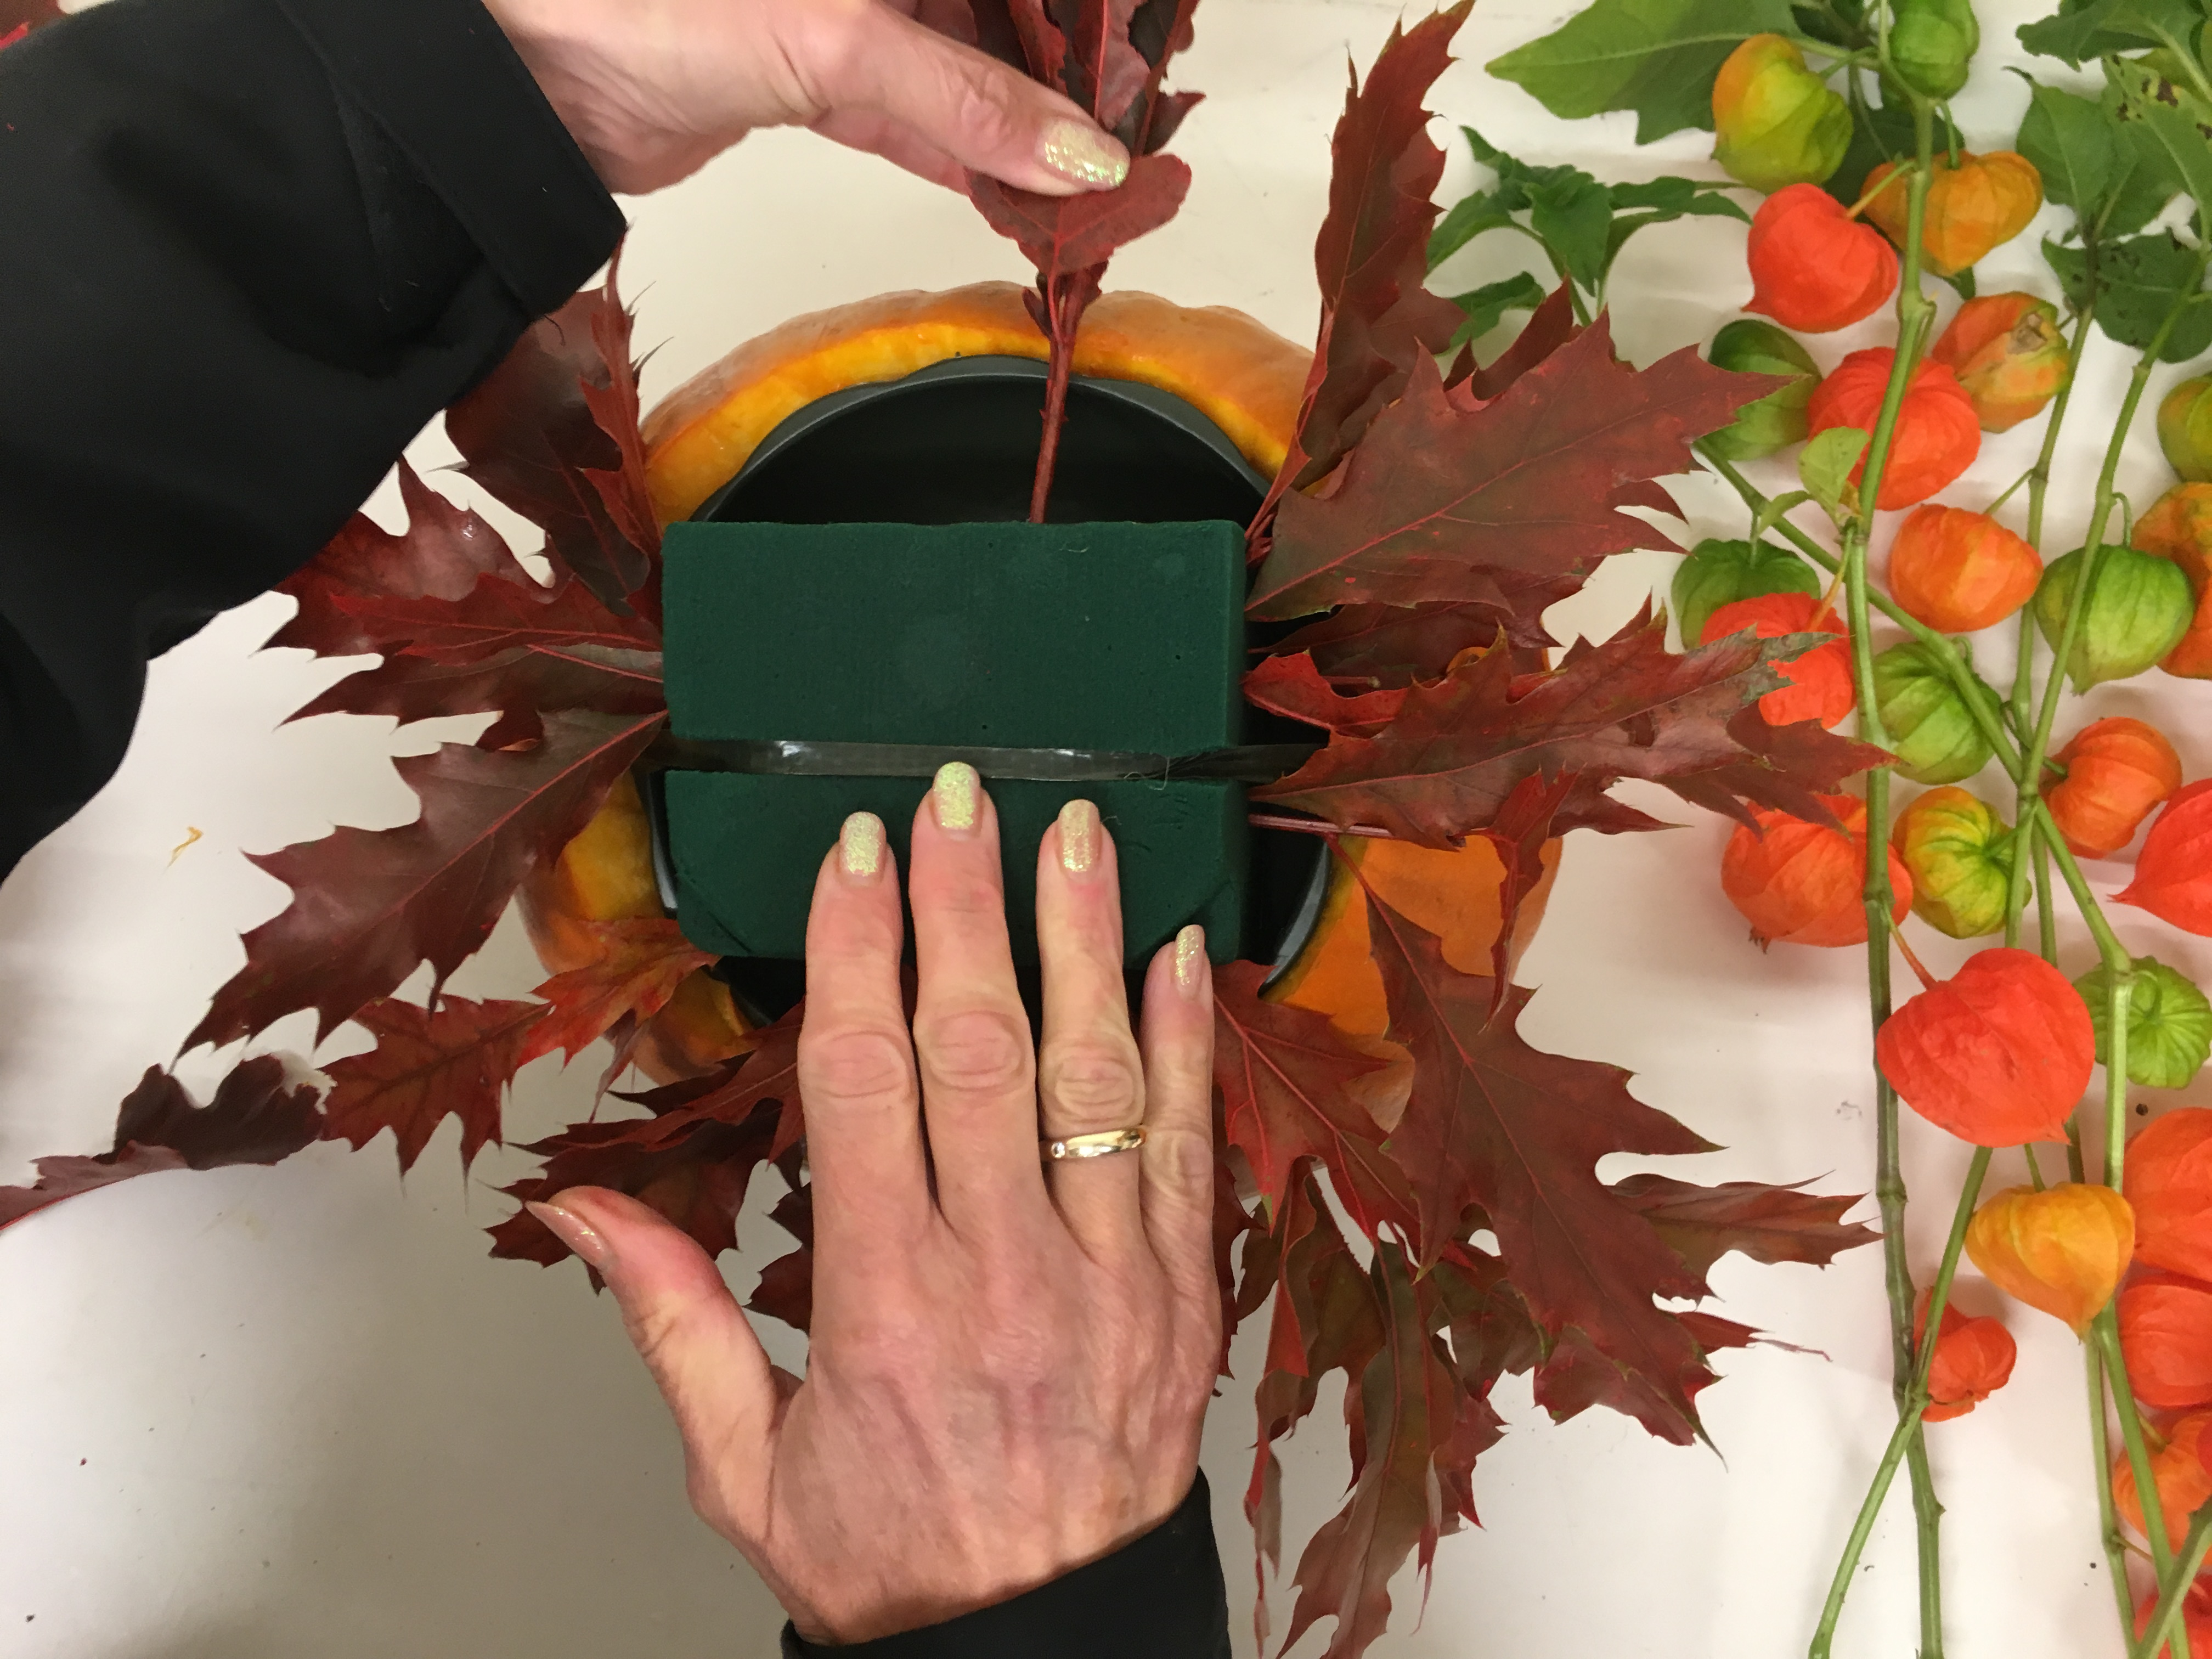 Using the Oak Leaves or your chosen foliage, create a collar around the base of the dish